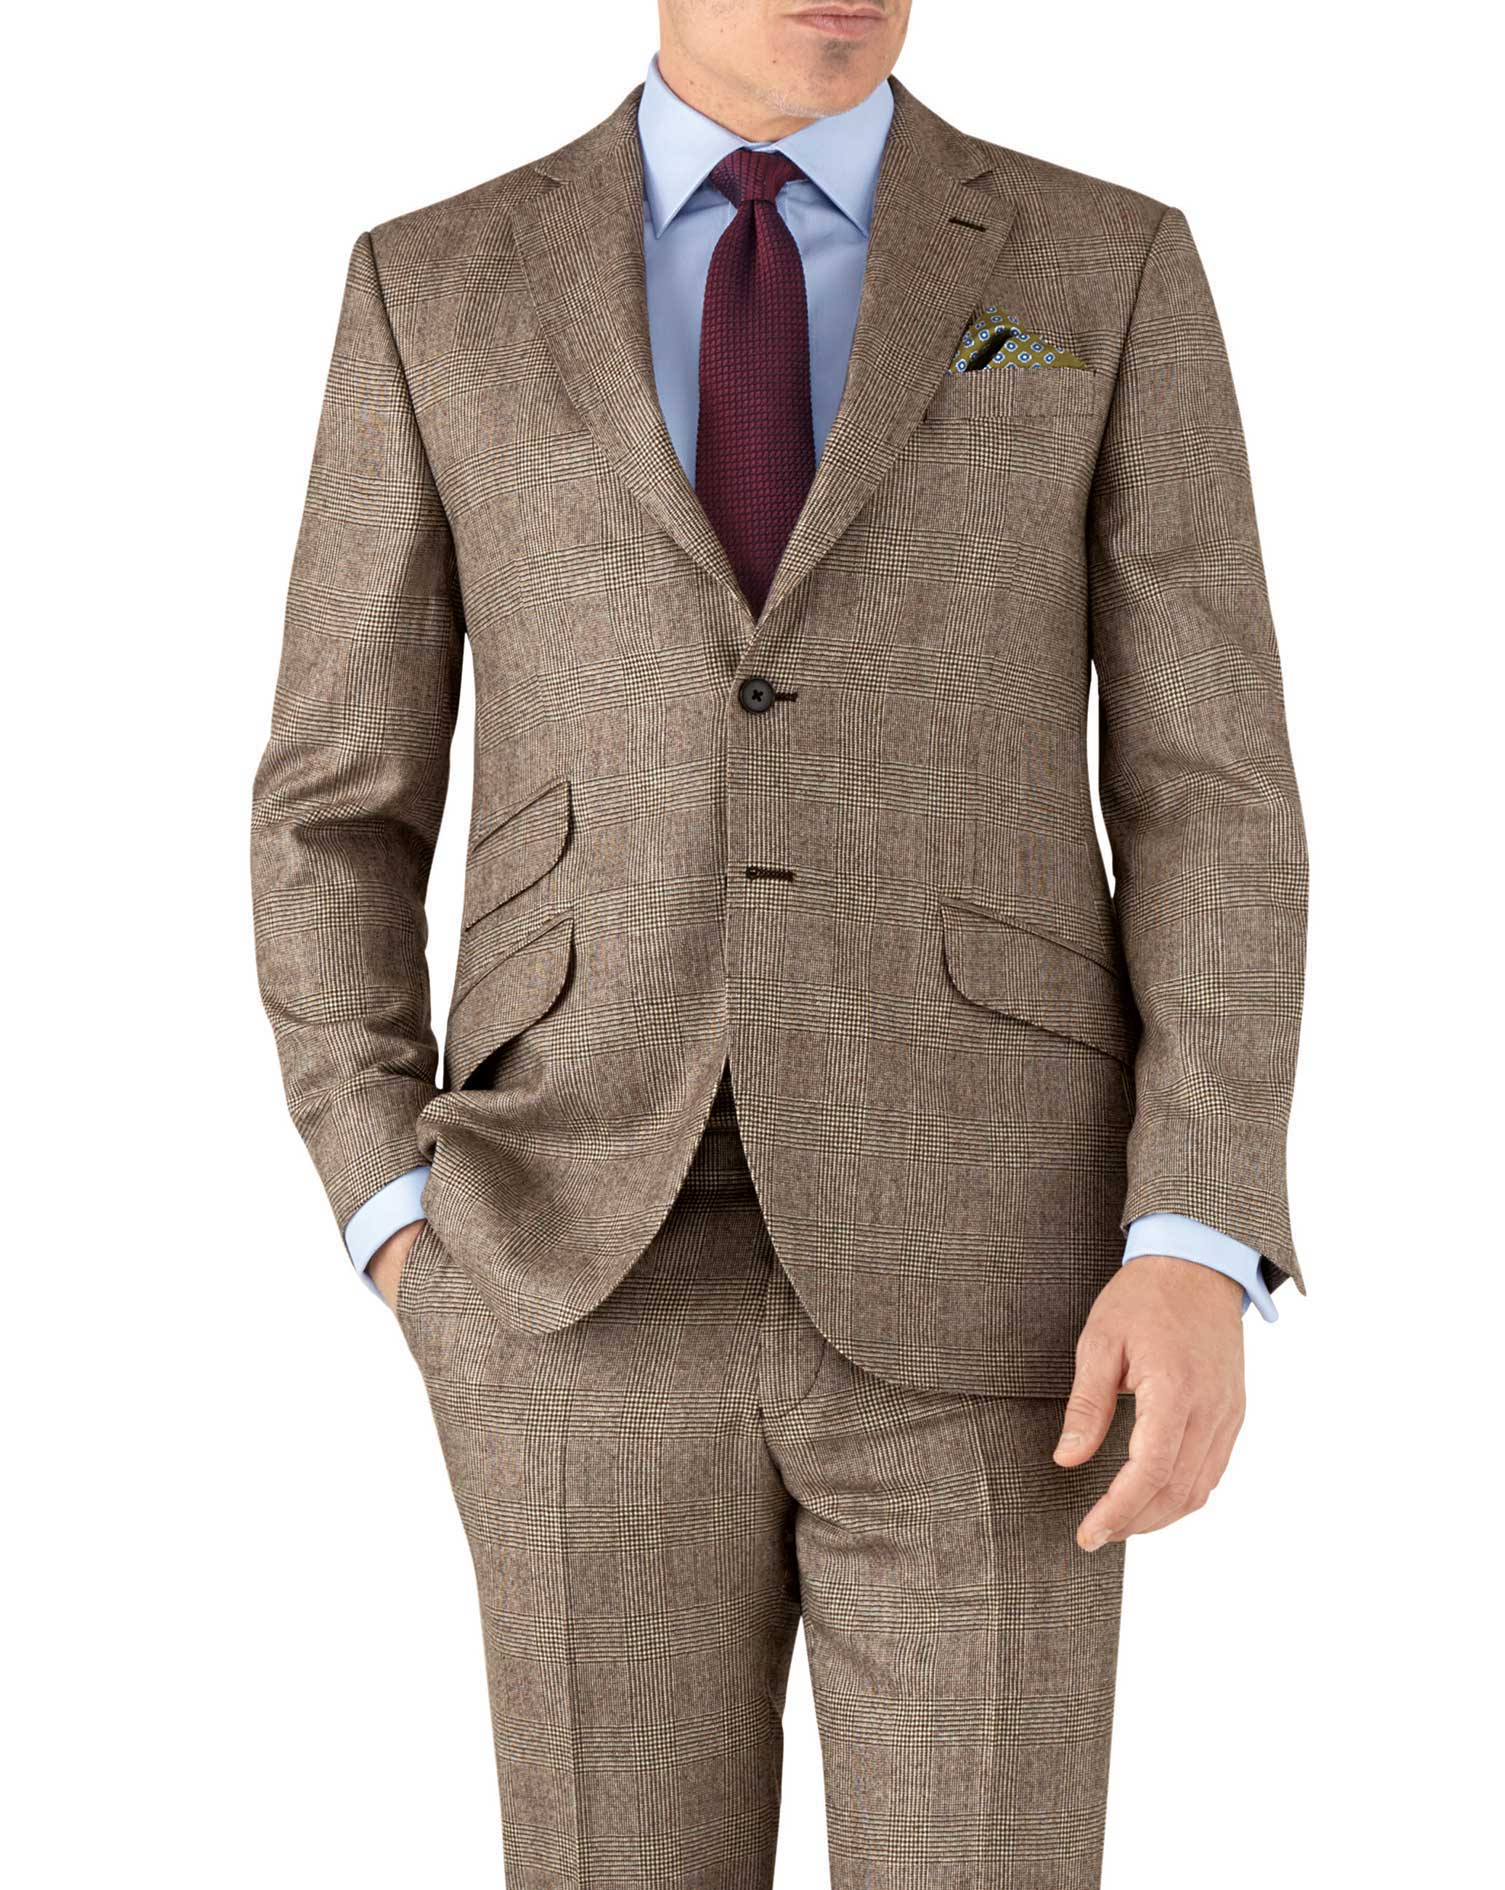 Tan check classic fit British serge luxury suit jacket